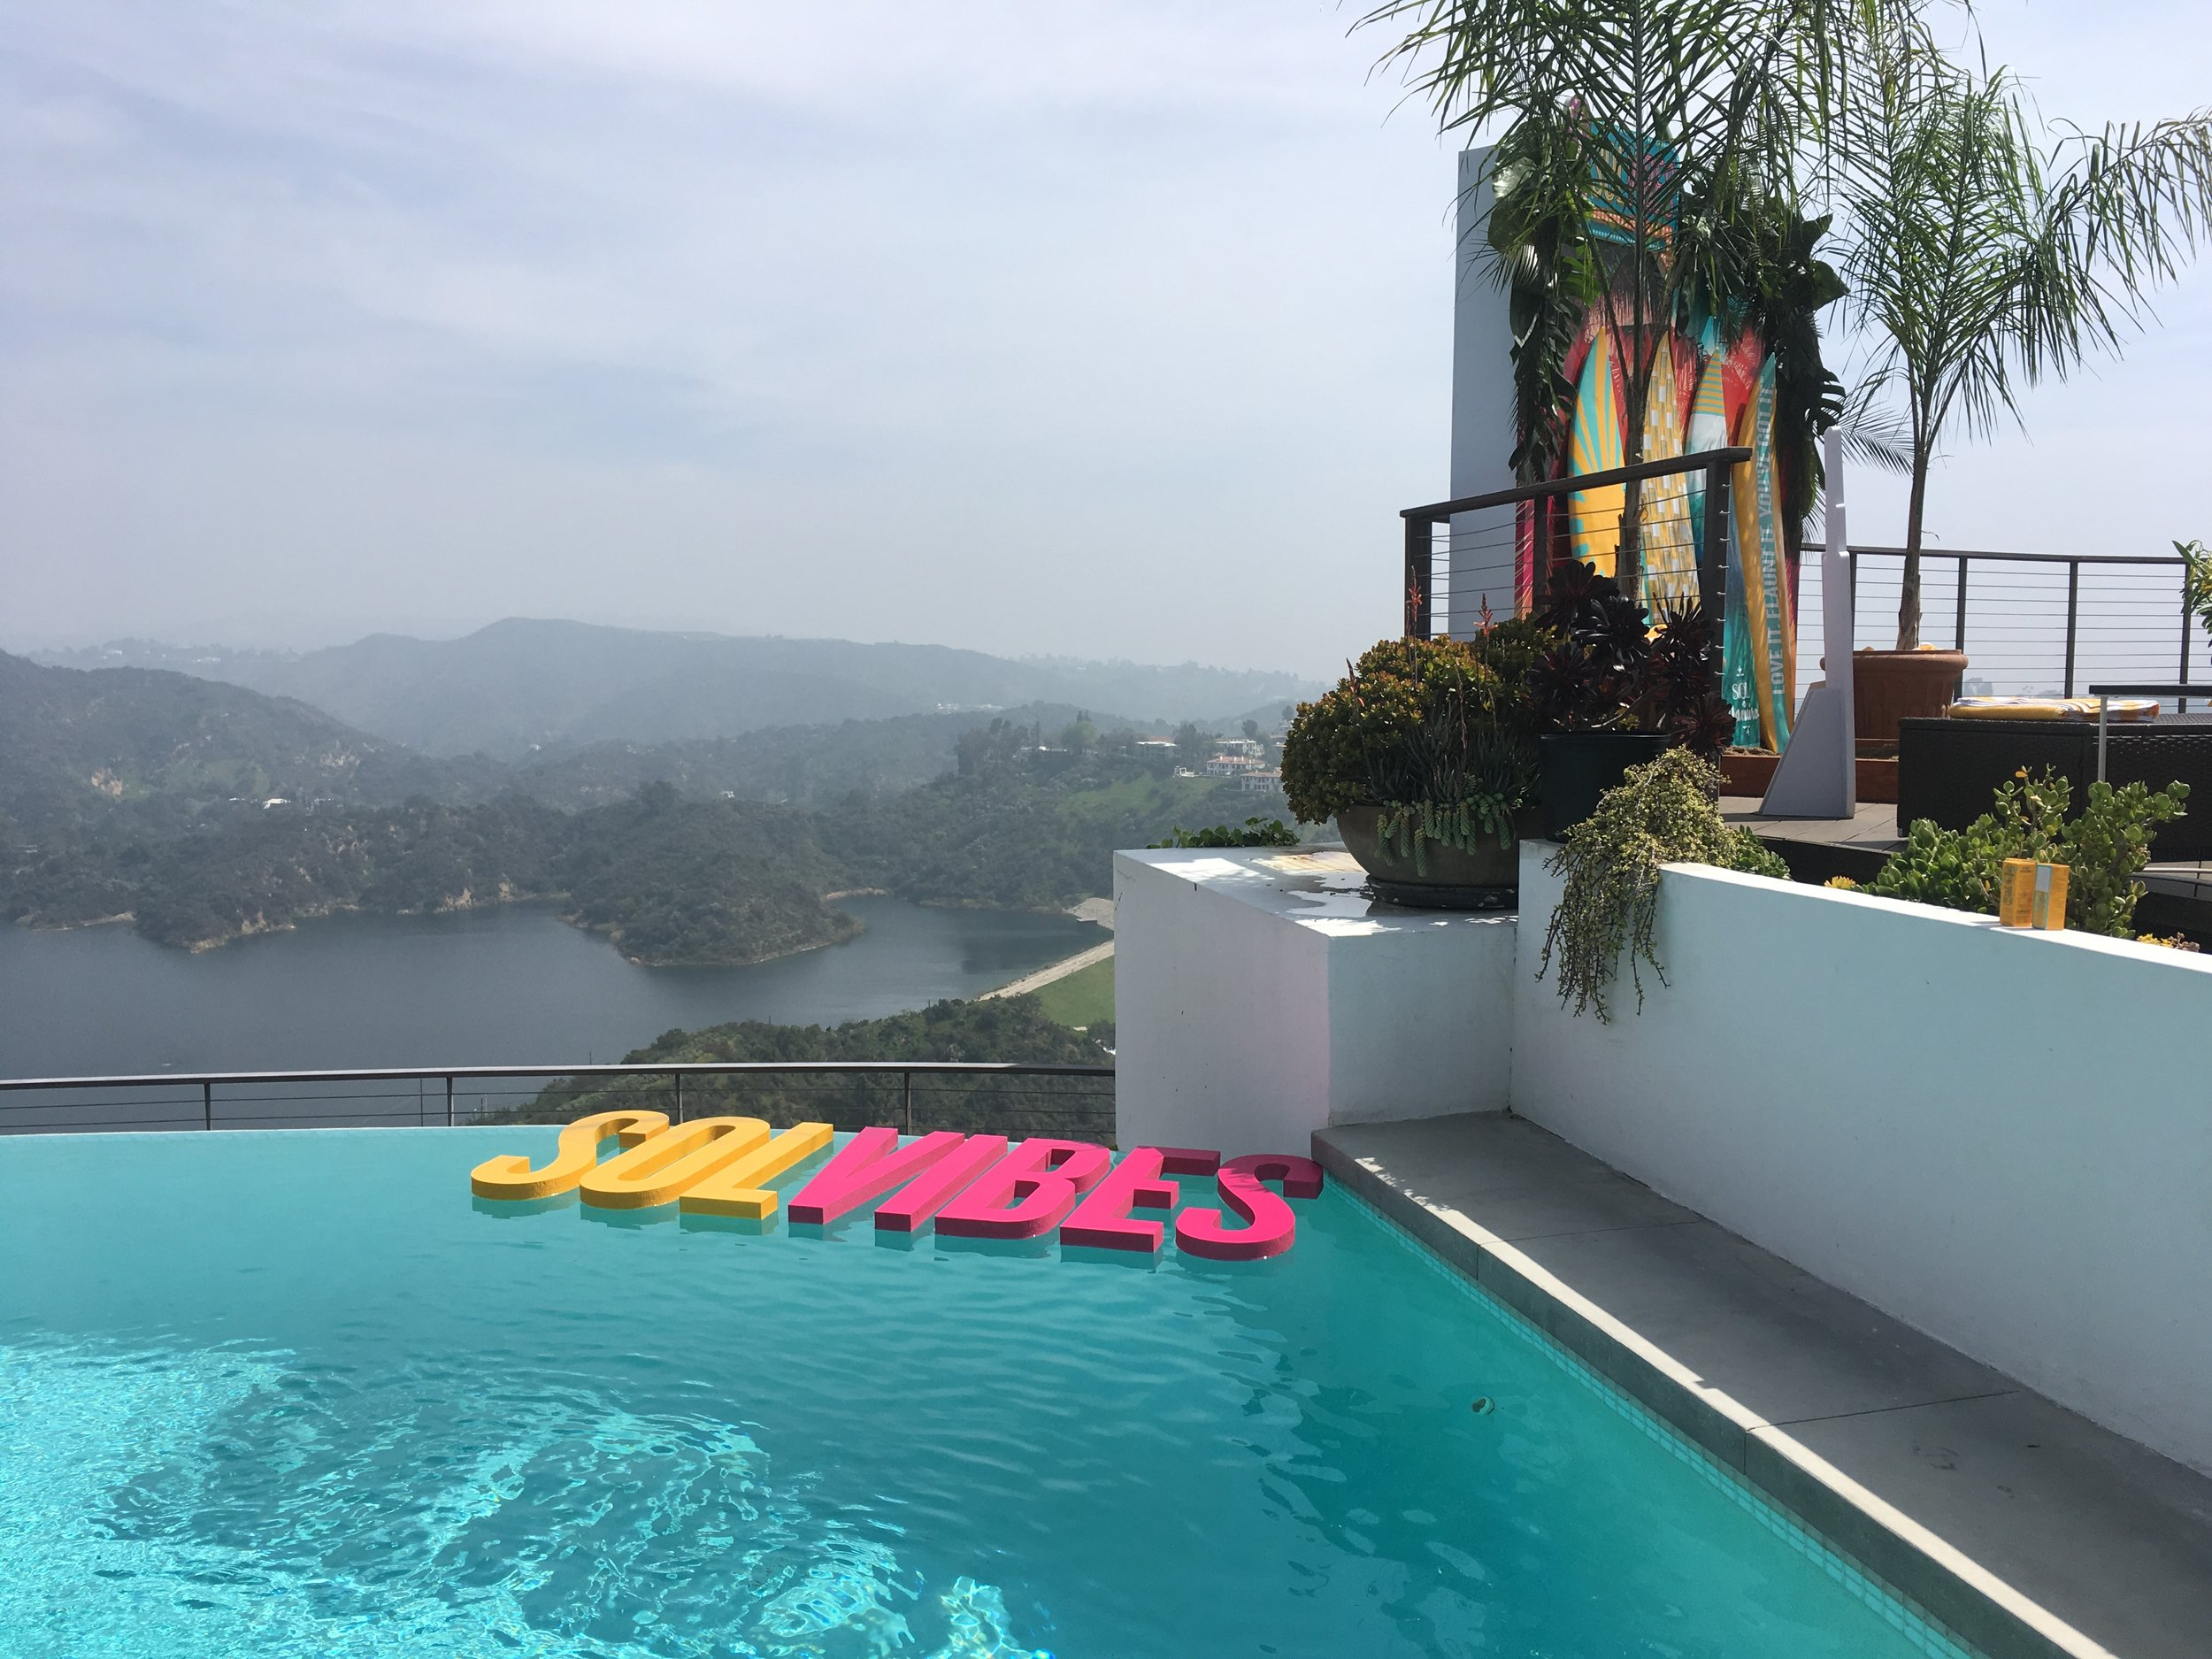 pool-epic-view-party-beauty-sol-de-janeiro